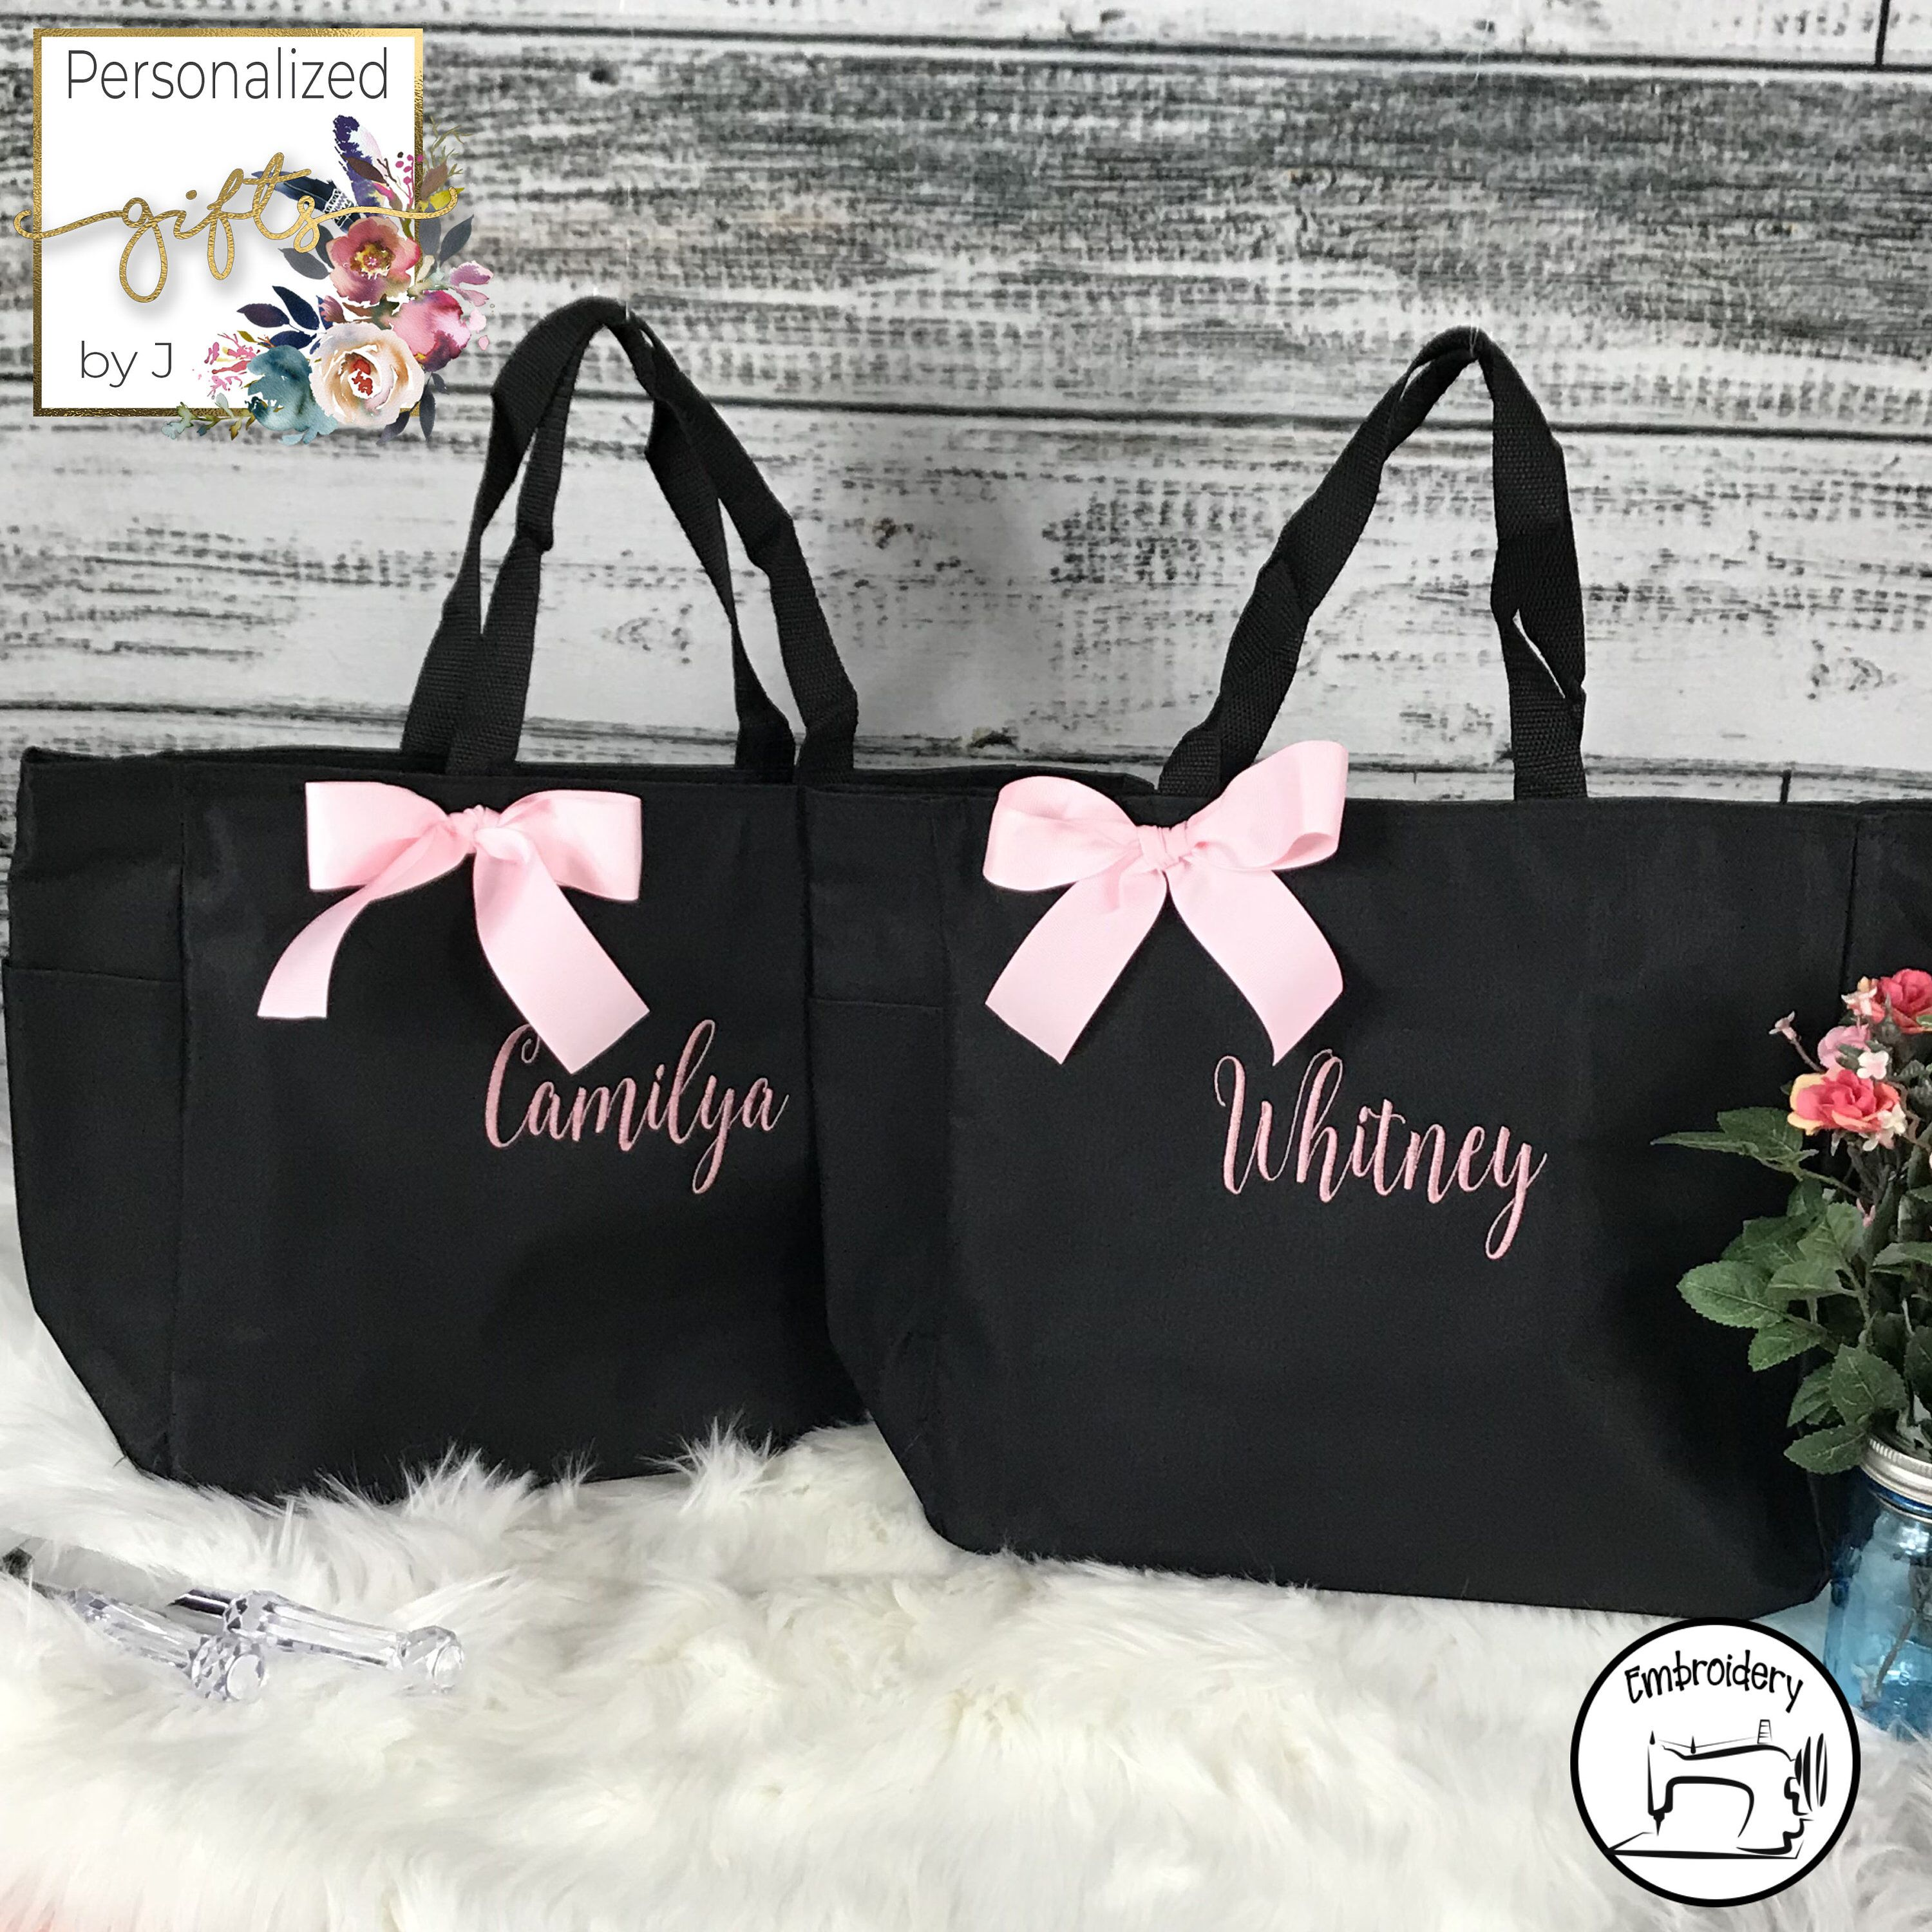 5 Personalized Tote Bag Bridesmaid Gift Cheer Dance Monogrammed Embroidered